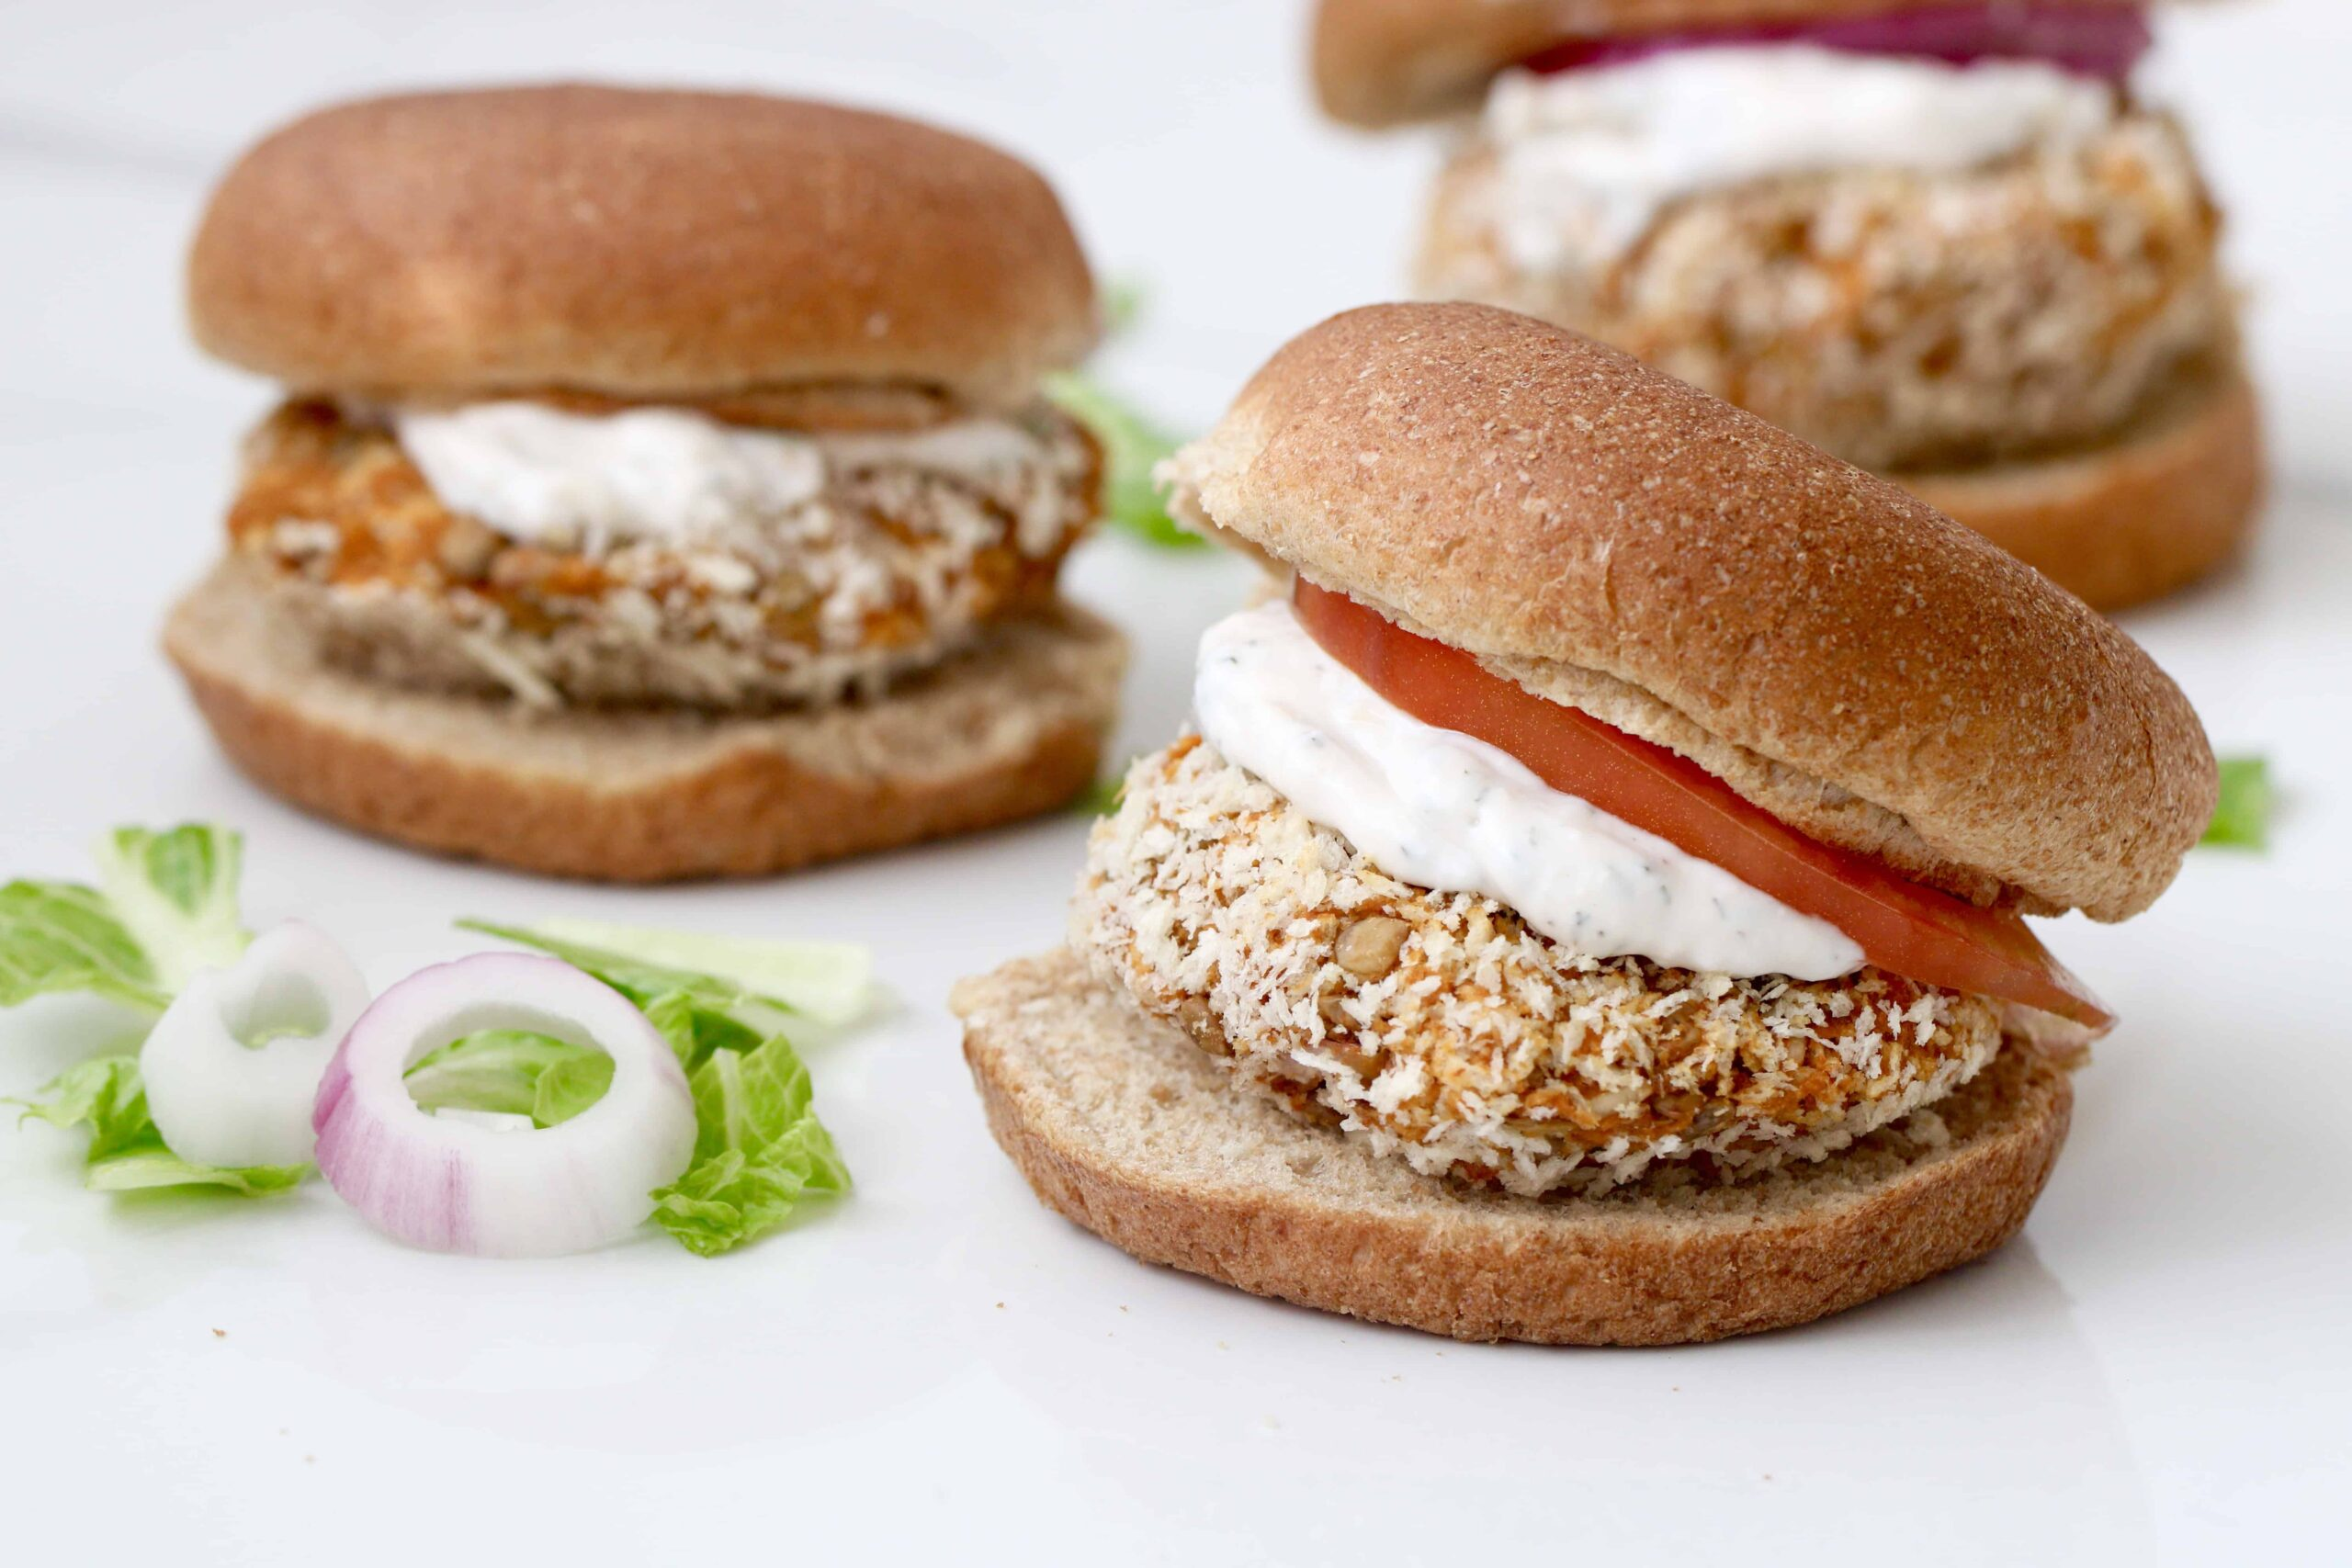 Bbq Lentil Burgers With Ranch Dressing Gluten Free Option